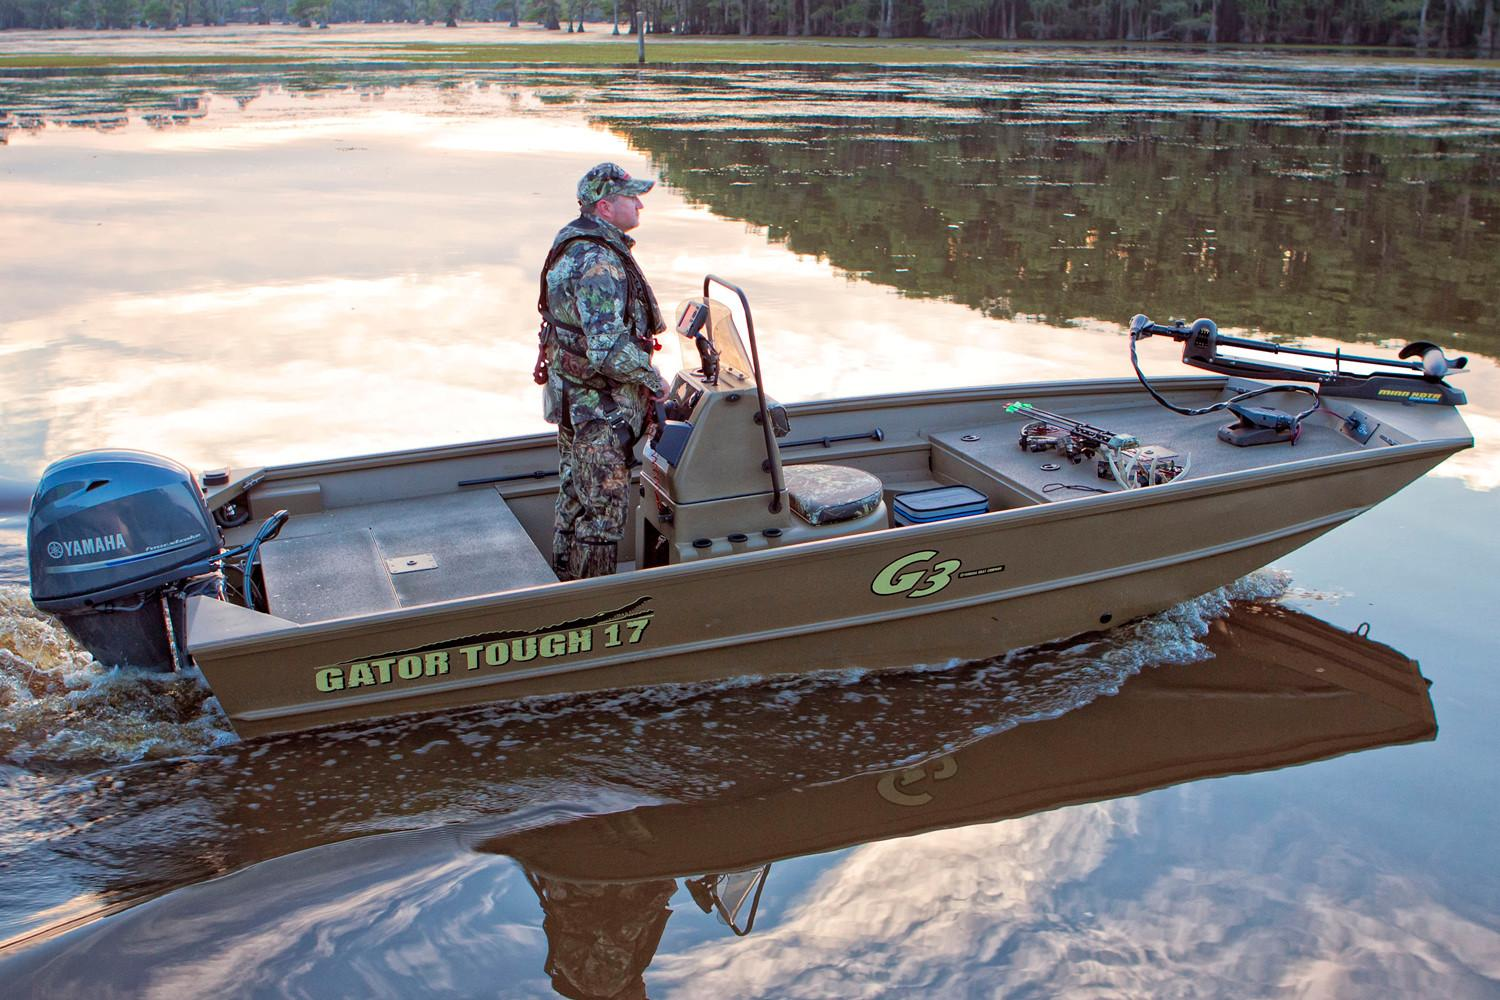 2019 G3 Gator Tough 17 CC in West Monroe, Louisiana - Photo 2